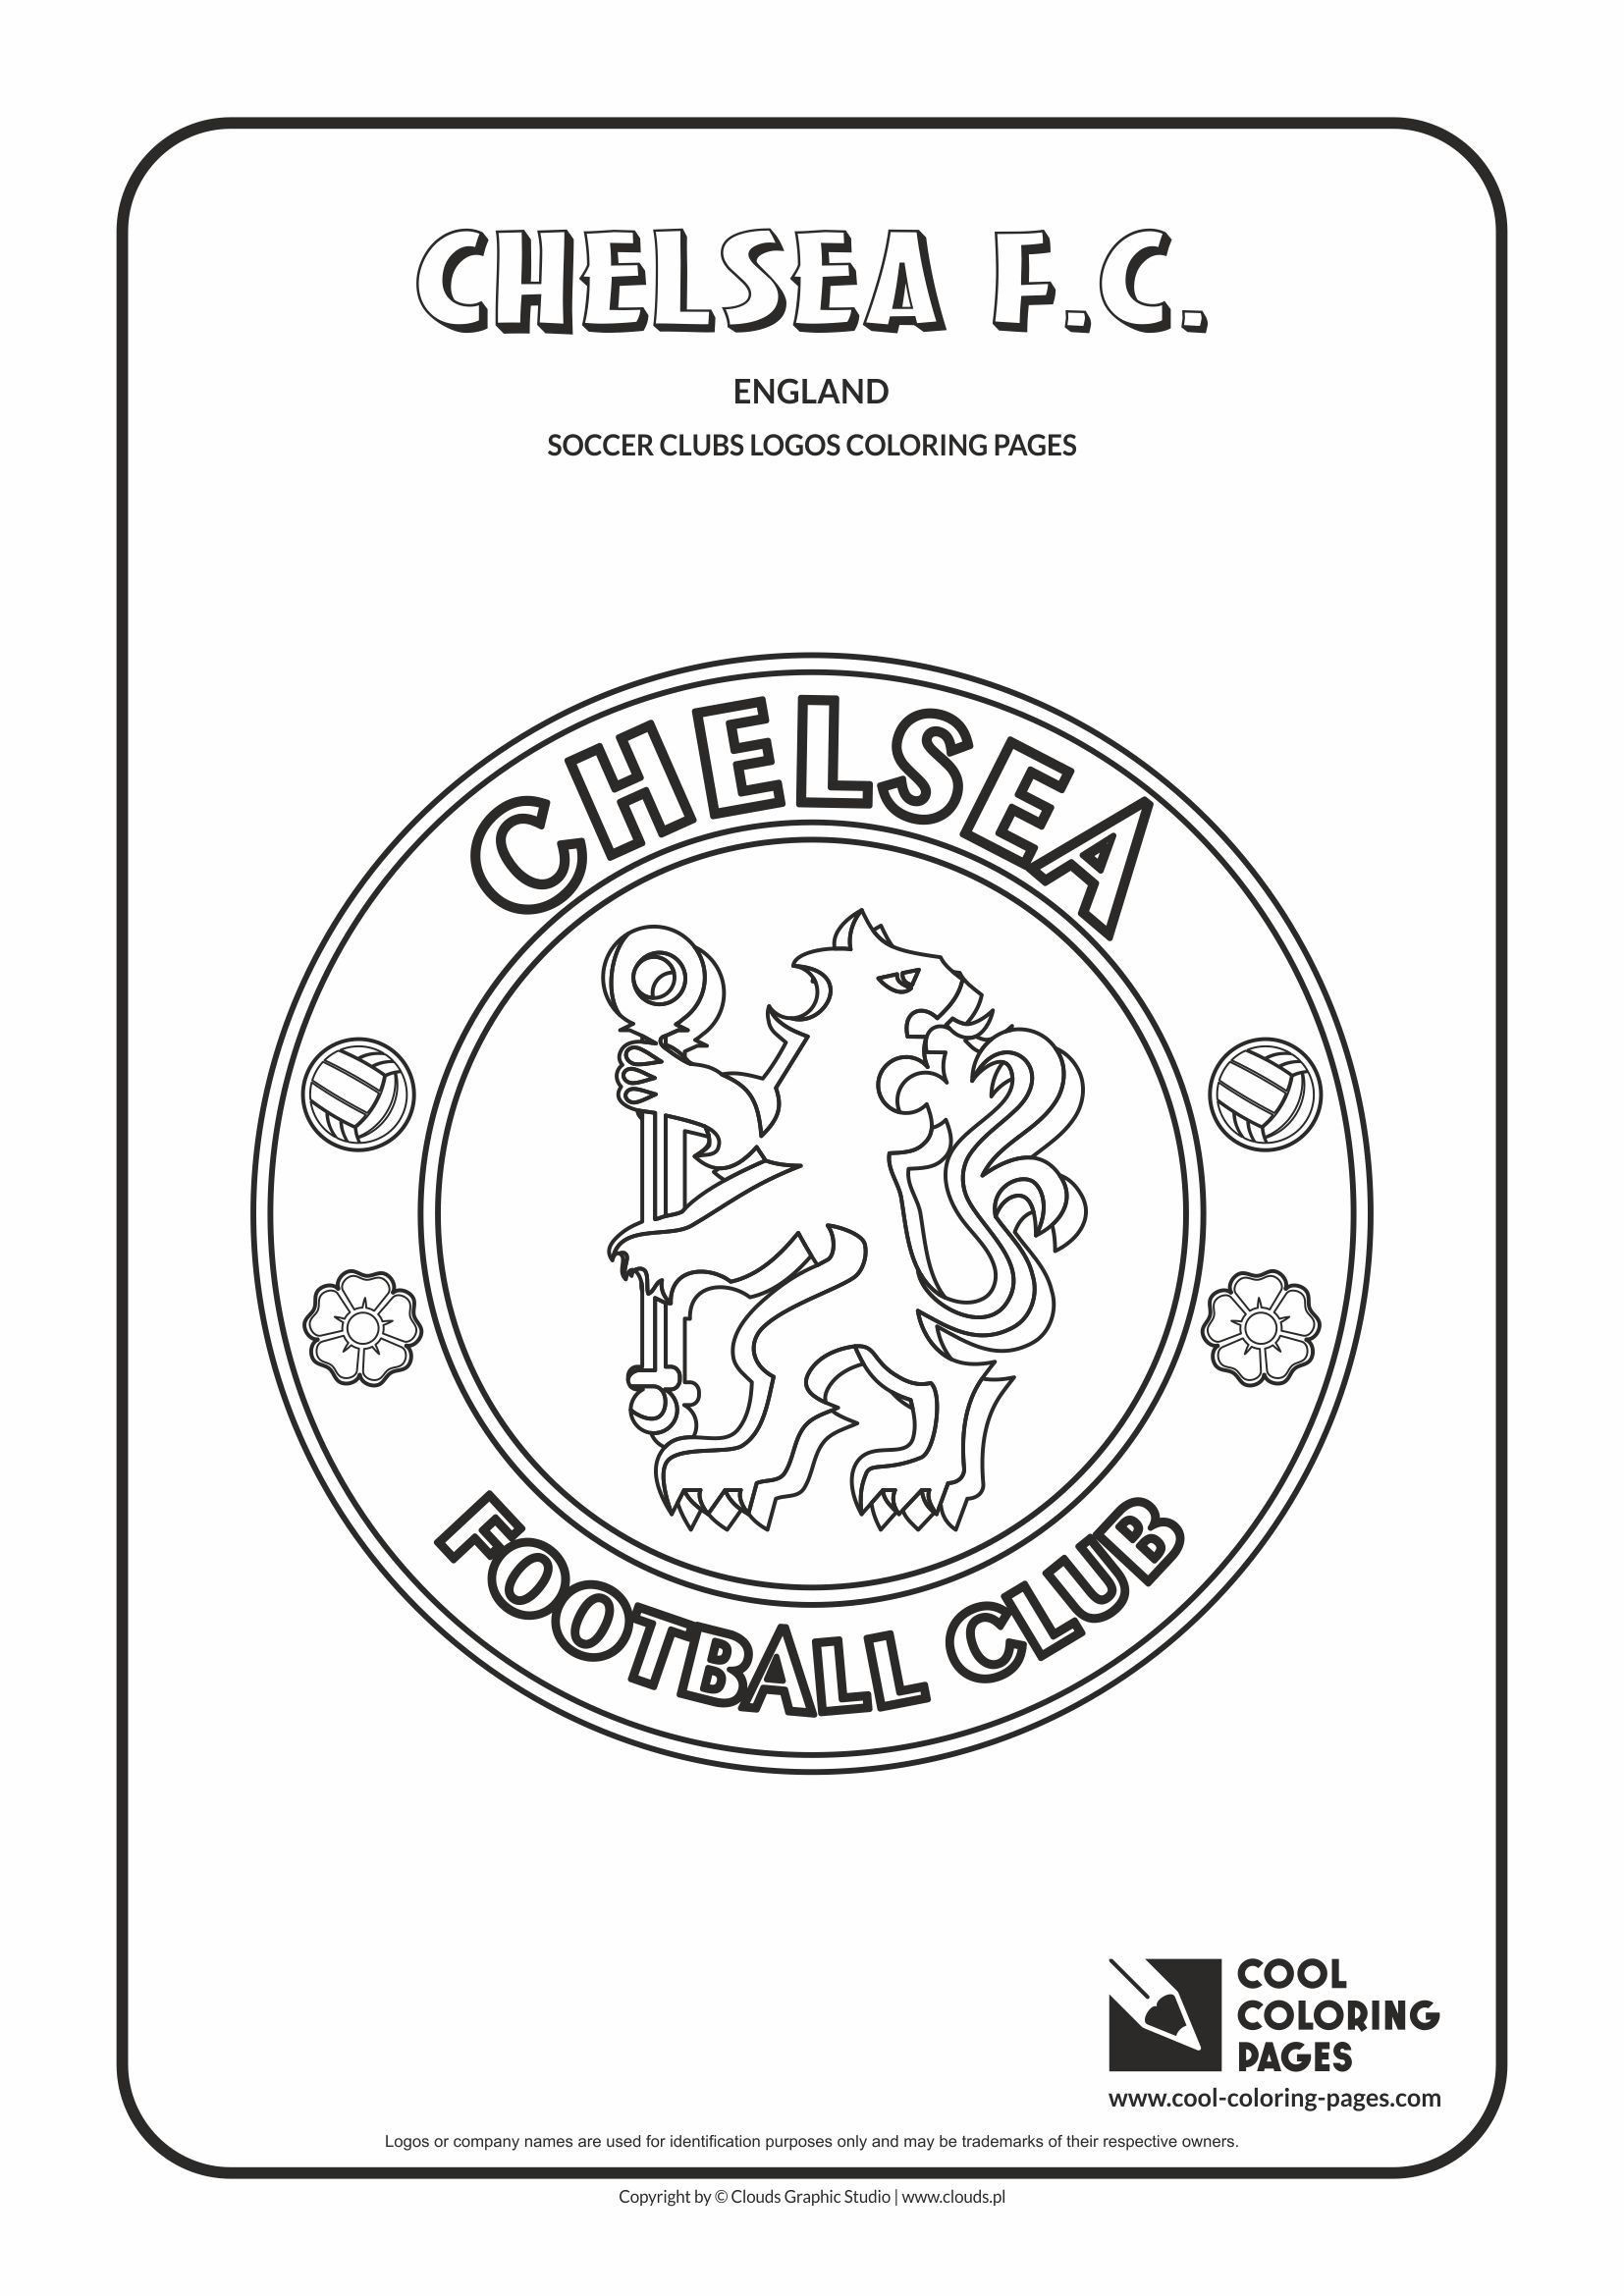 cool coloring pages soccer clubs logos paris saint germain